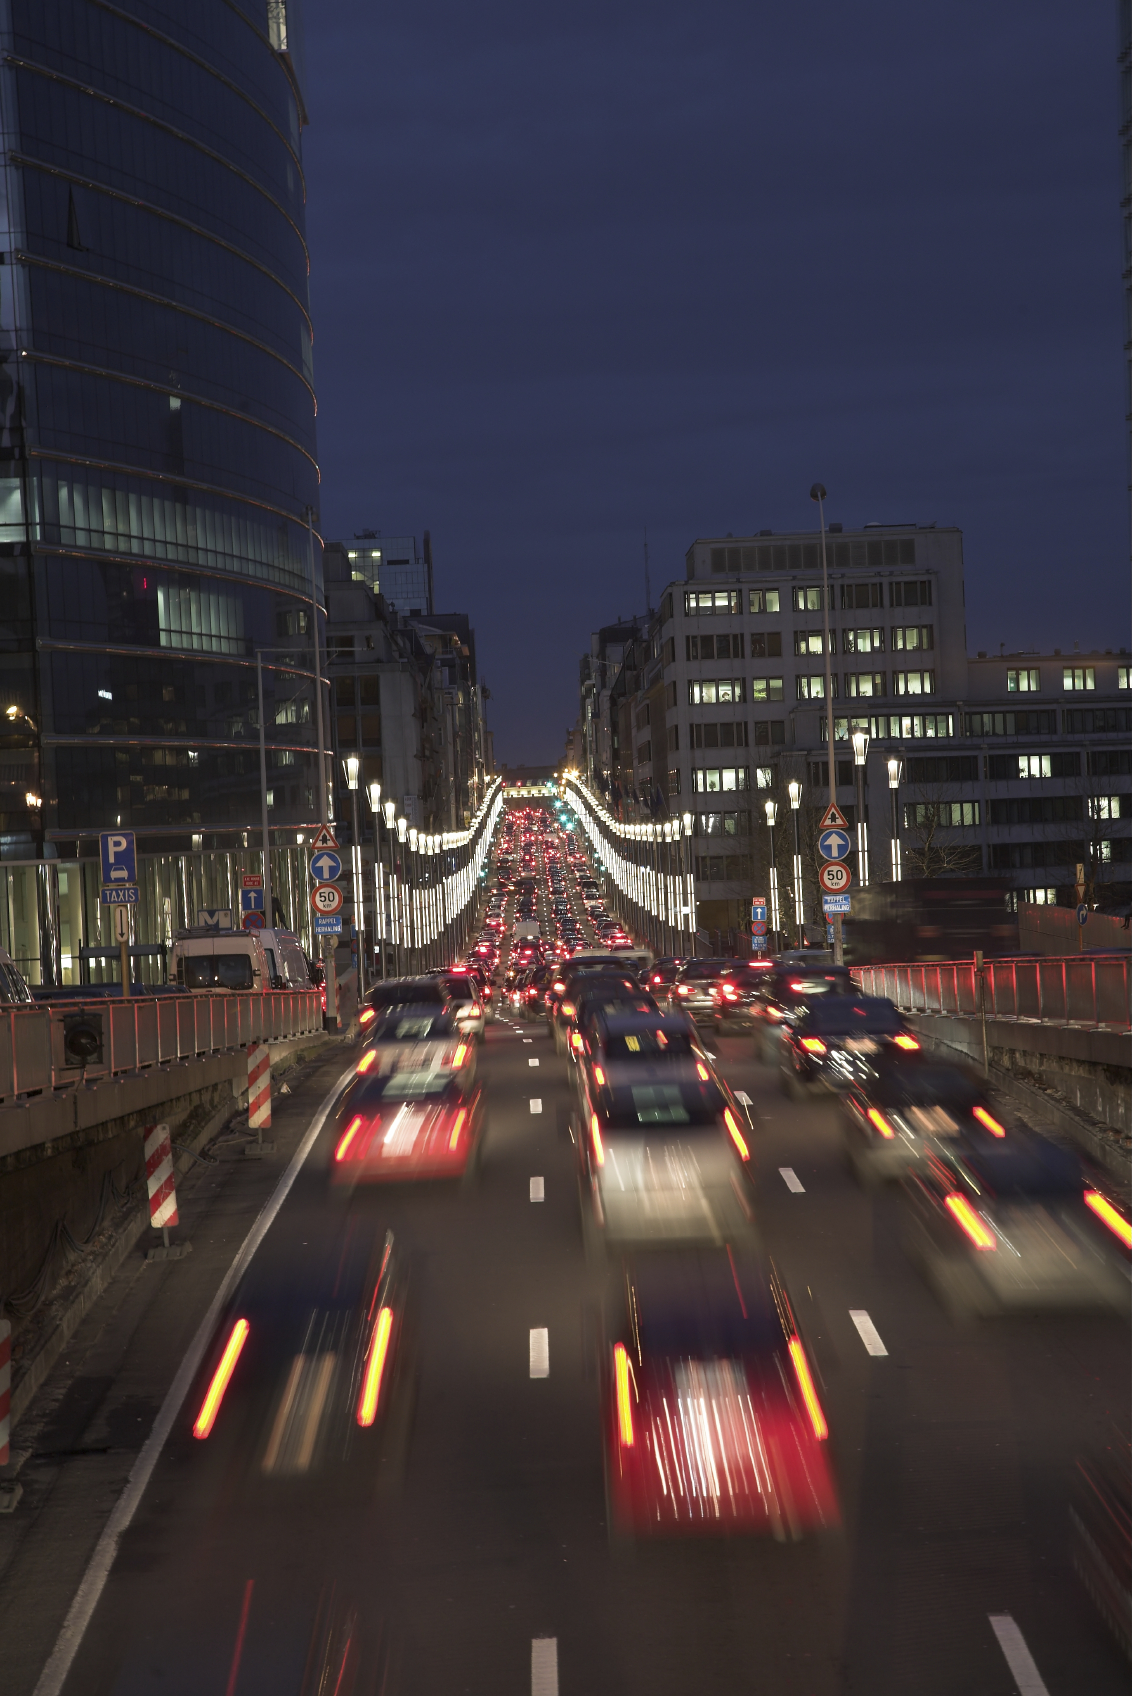 London 'mini-Holland' pilot scheme cuts traffic by half (UK)